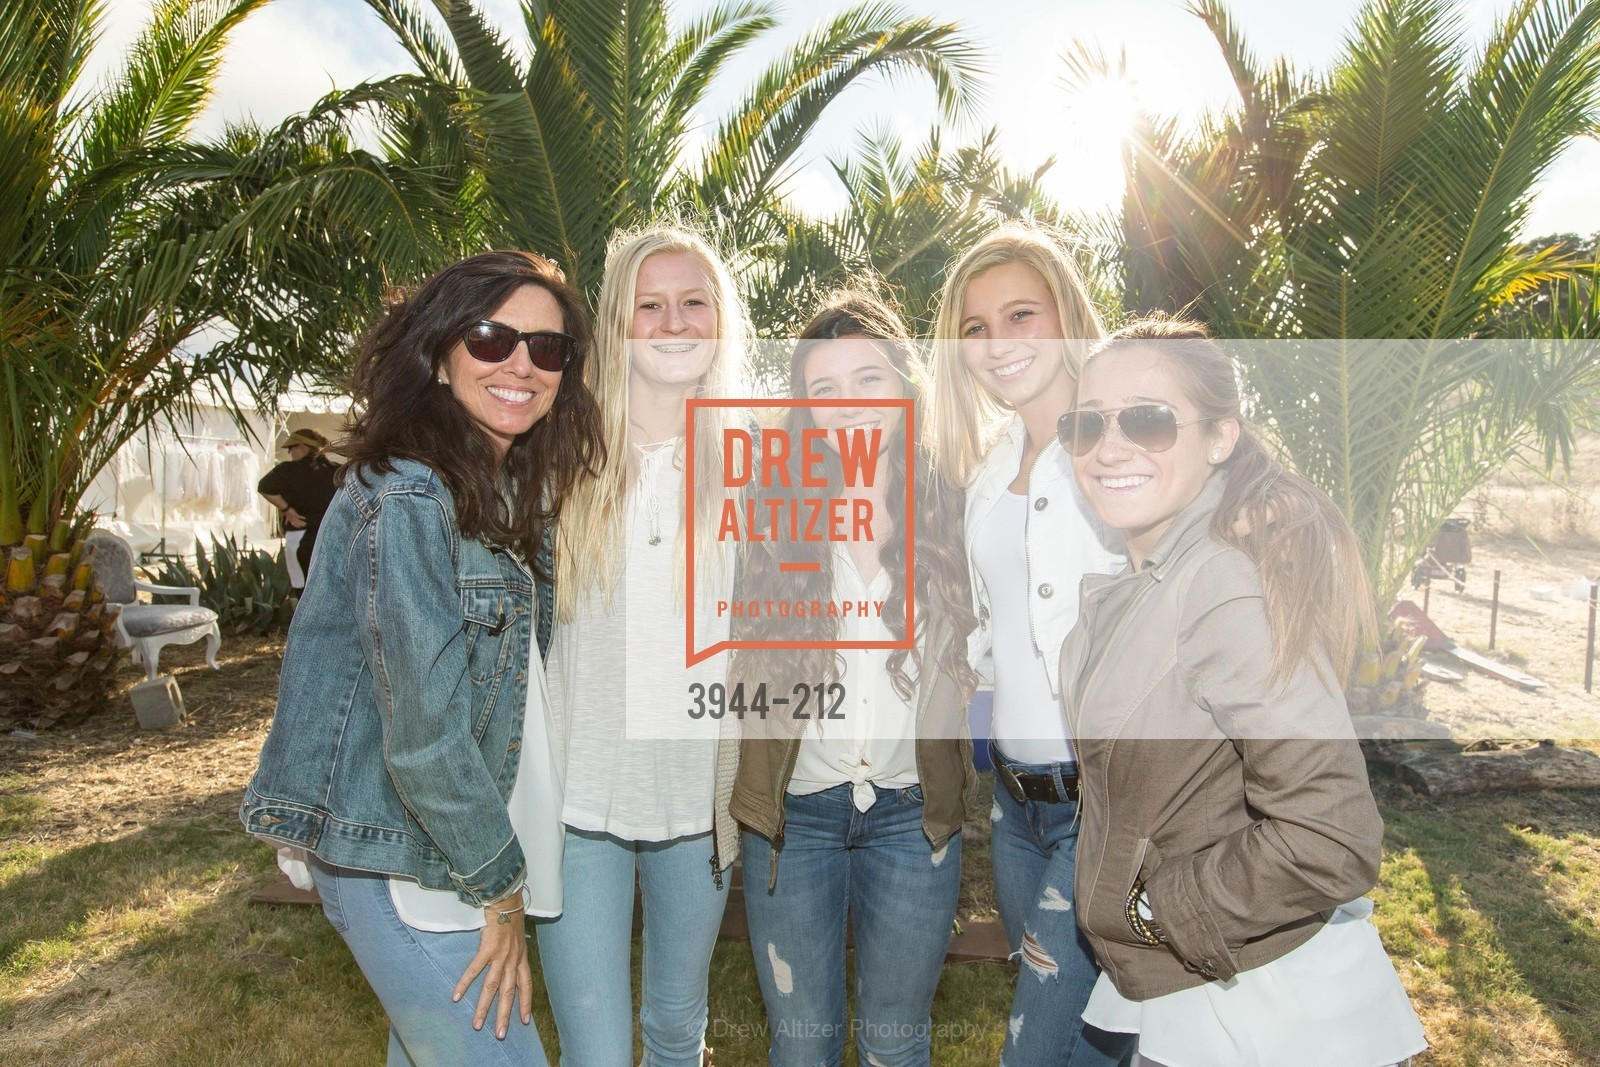 Sydney Chaney, Bridgett Shaeffer, Siena Thomas, Harris Thomas, Gabriella Diaz-Valdes, Stick & Ball Oyster Cup Polo Tournament, Cerro Pampa Polo Club, July 25th, 2015,Drew Altizer, Drew Altizer Photography, full-service agency, private events, San Francisco photographer, photographer california